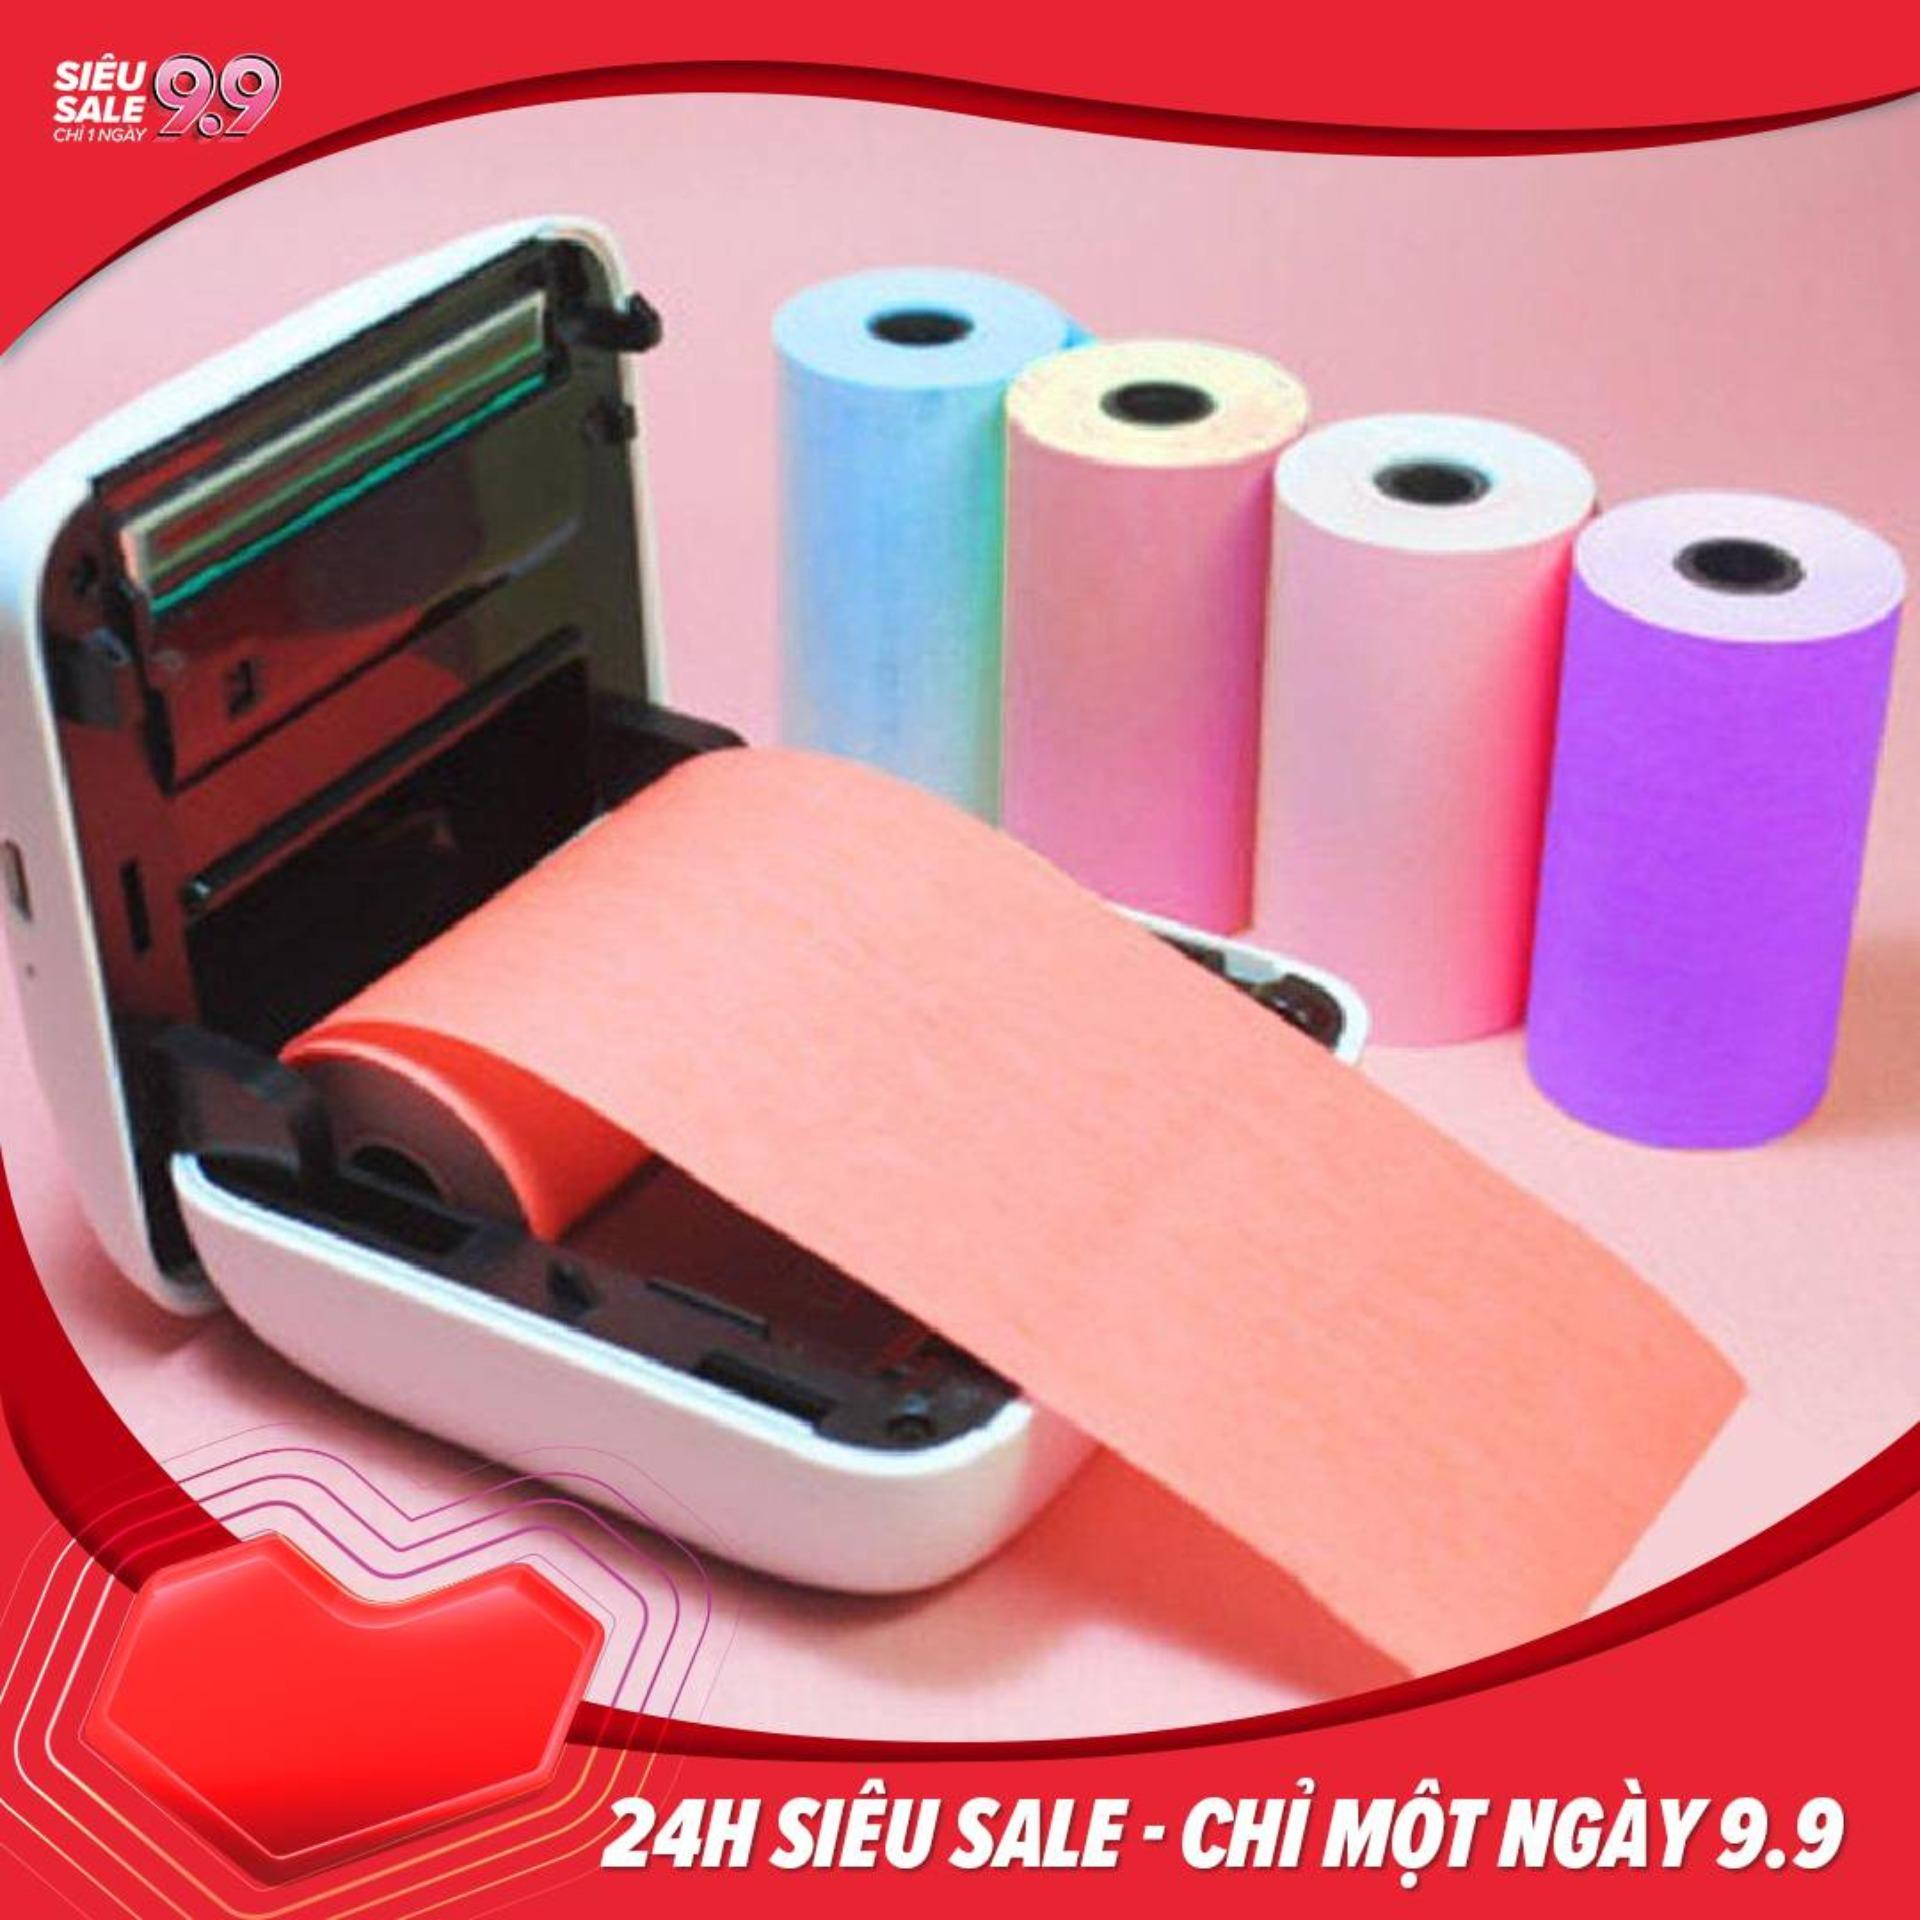 Multi-Function Printers for sale - All-in-One Printers price